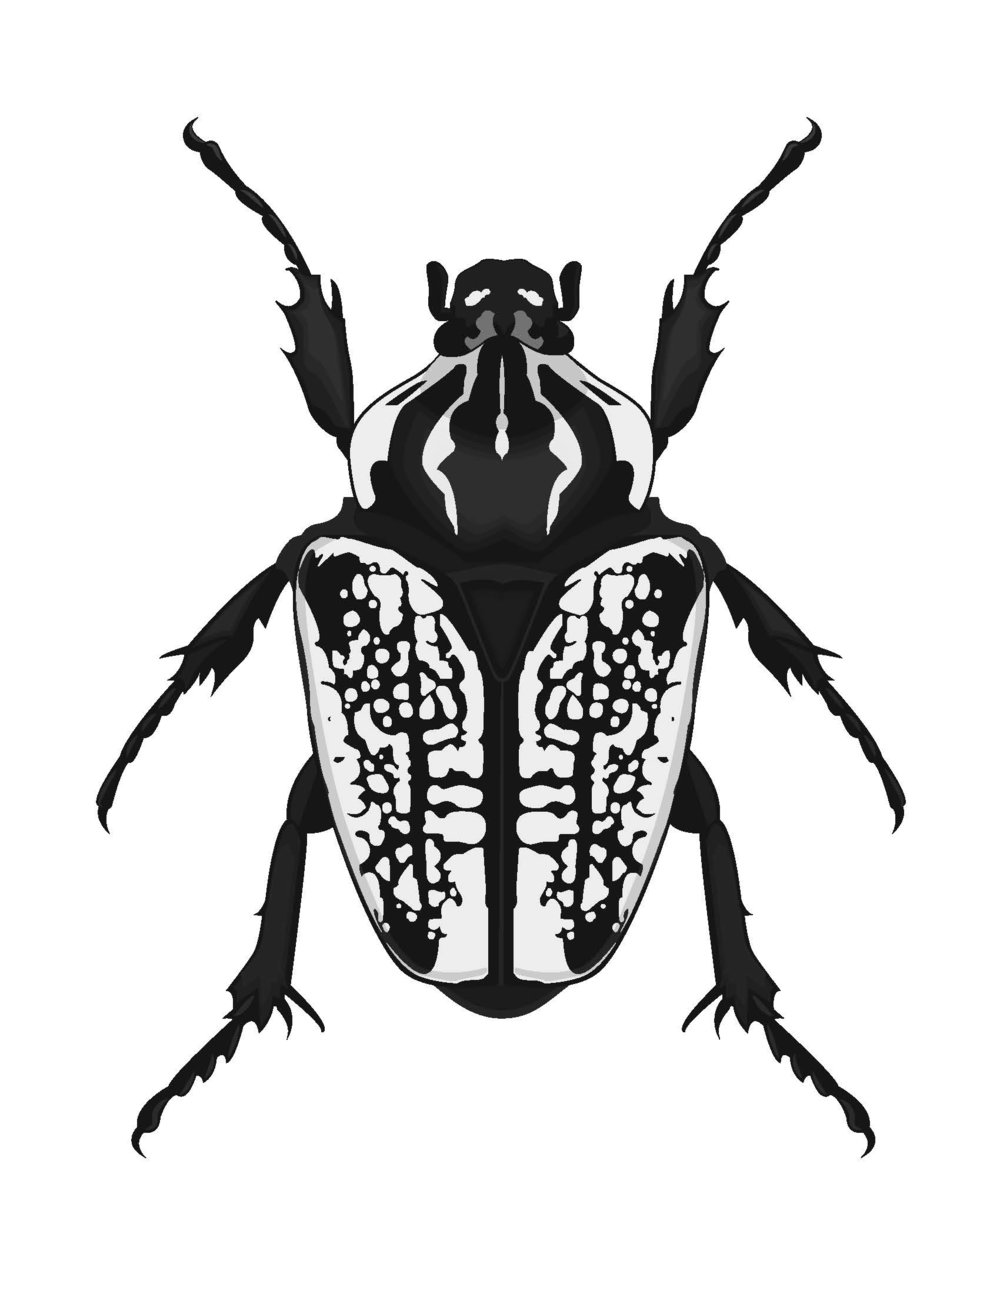 Goliath Beetle, 2012